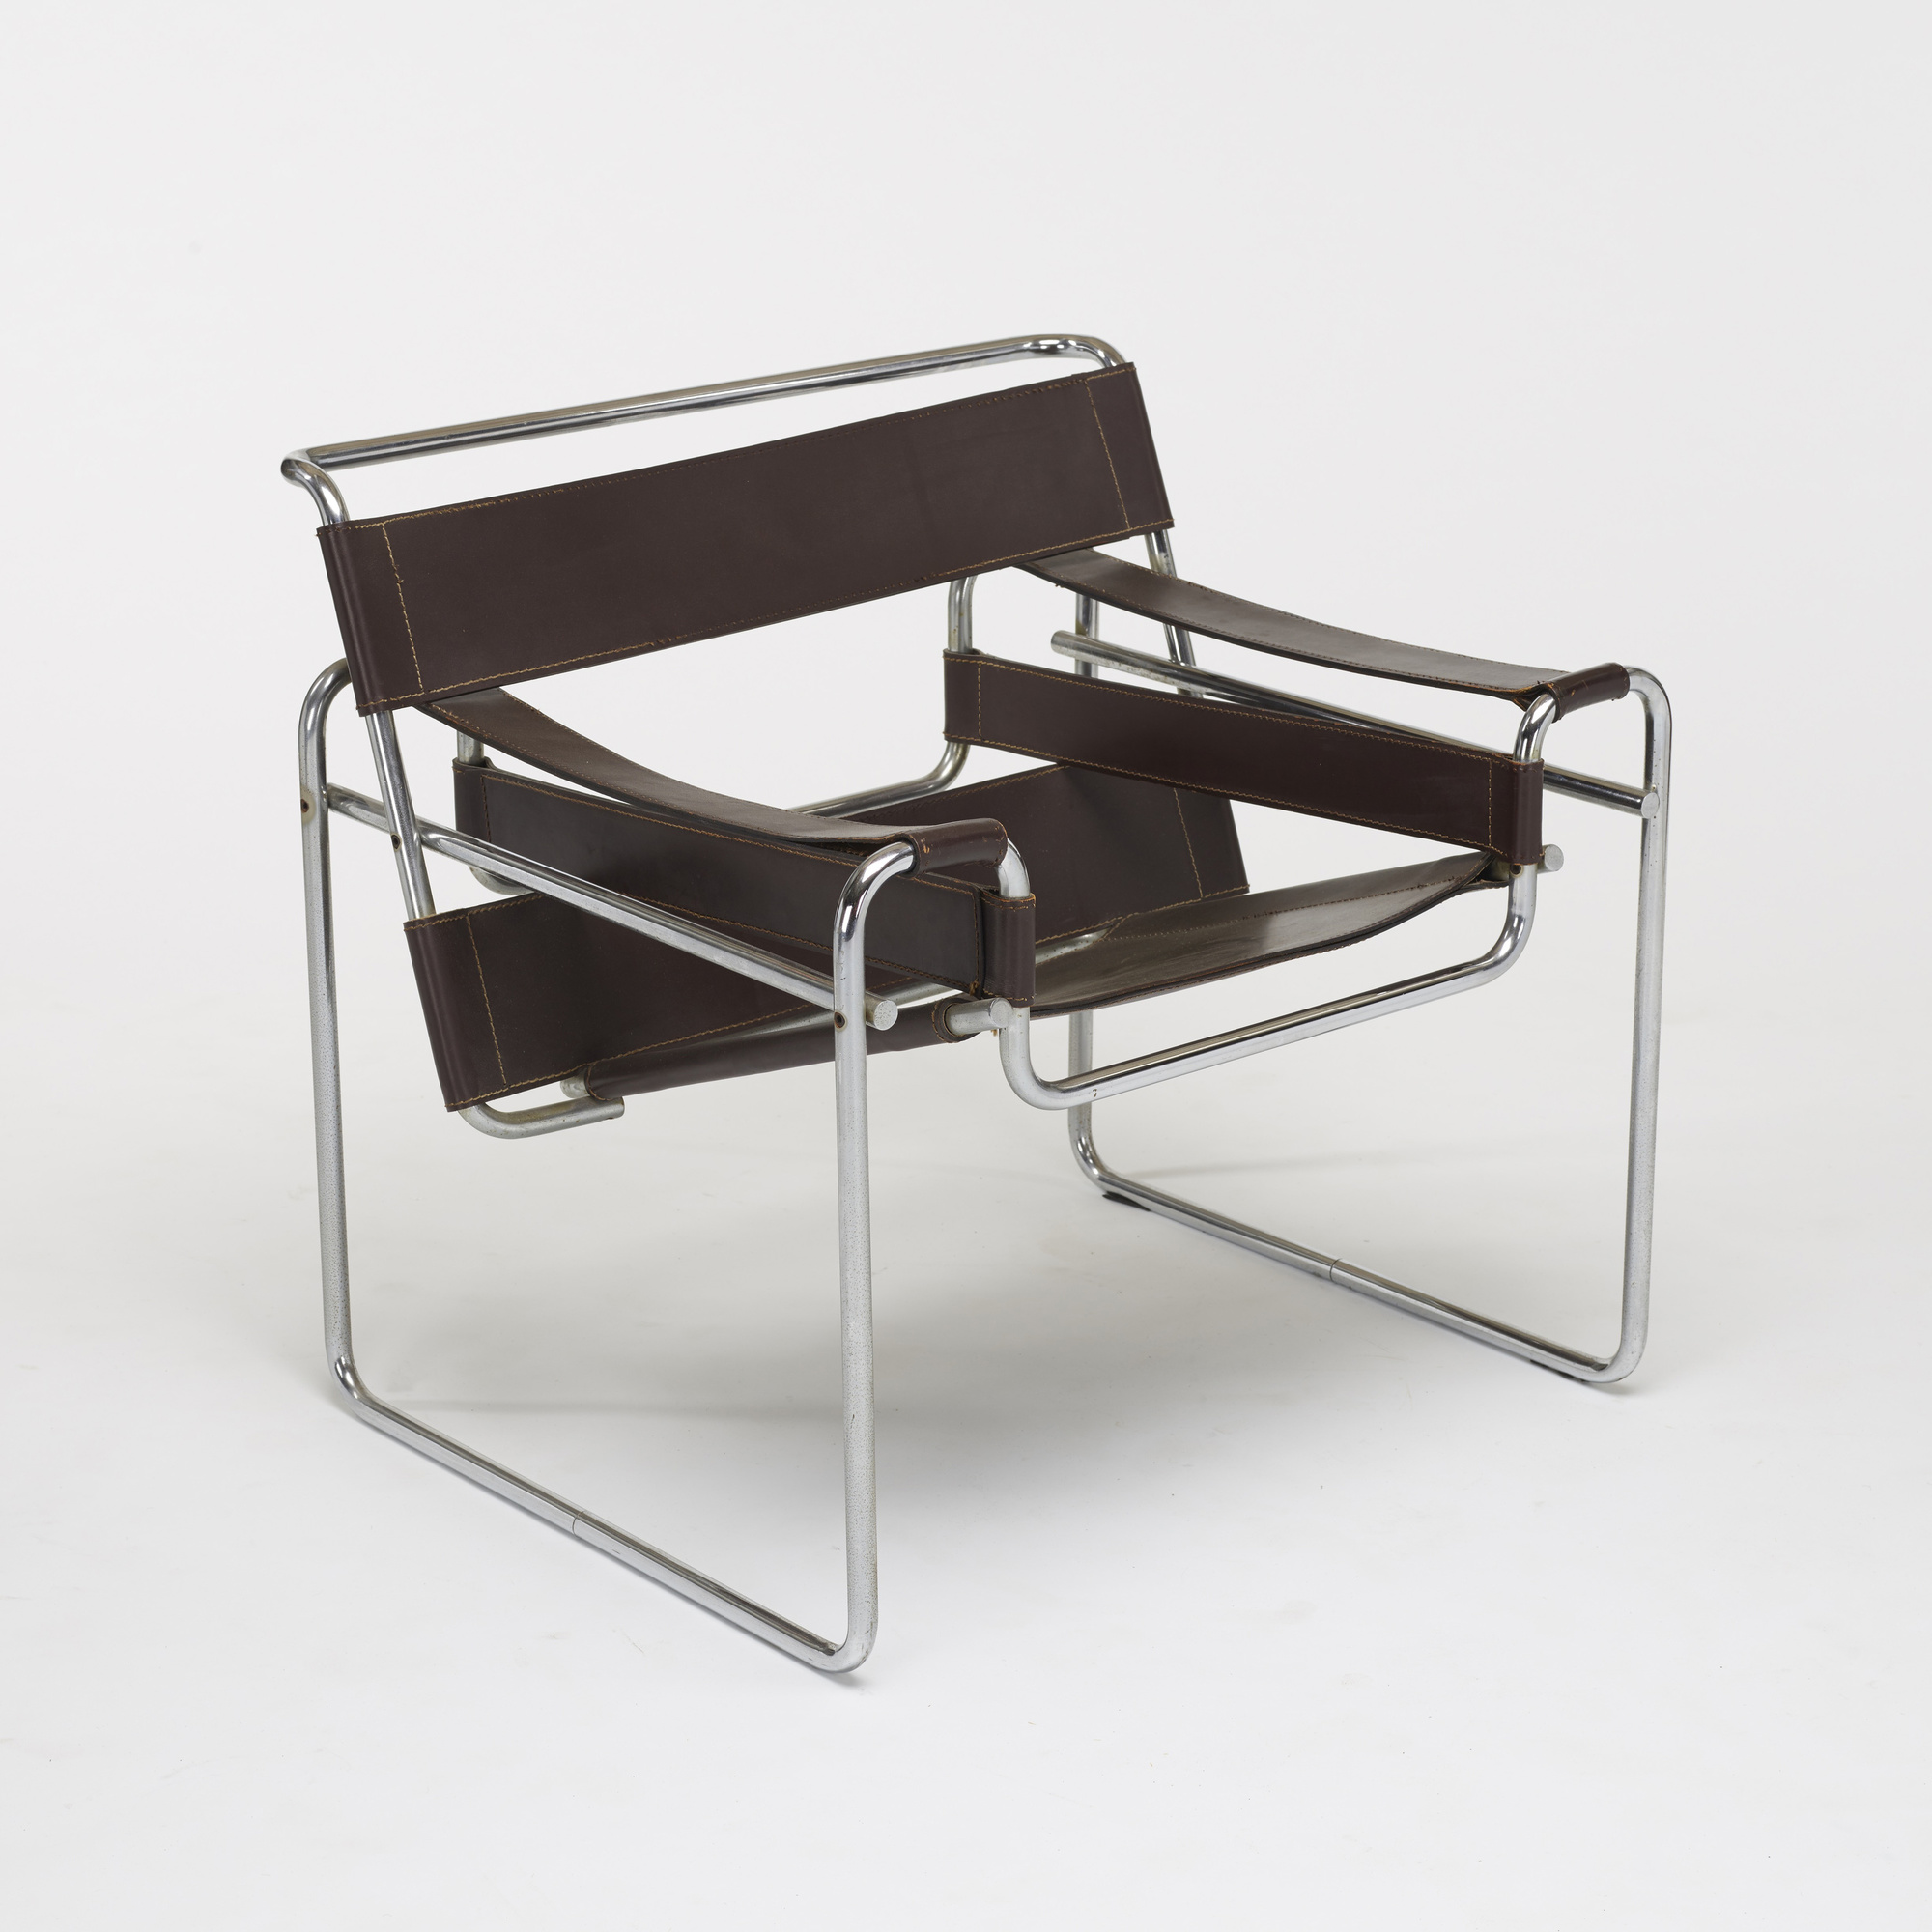 183: Marcel Breuer / Wassily chair (2 of 2)